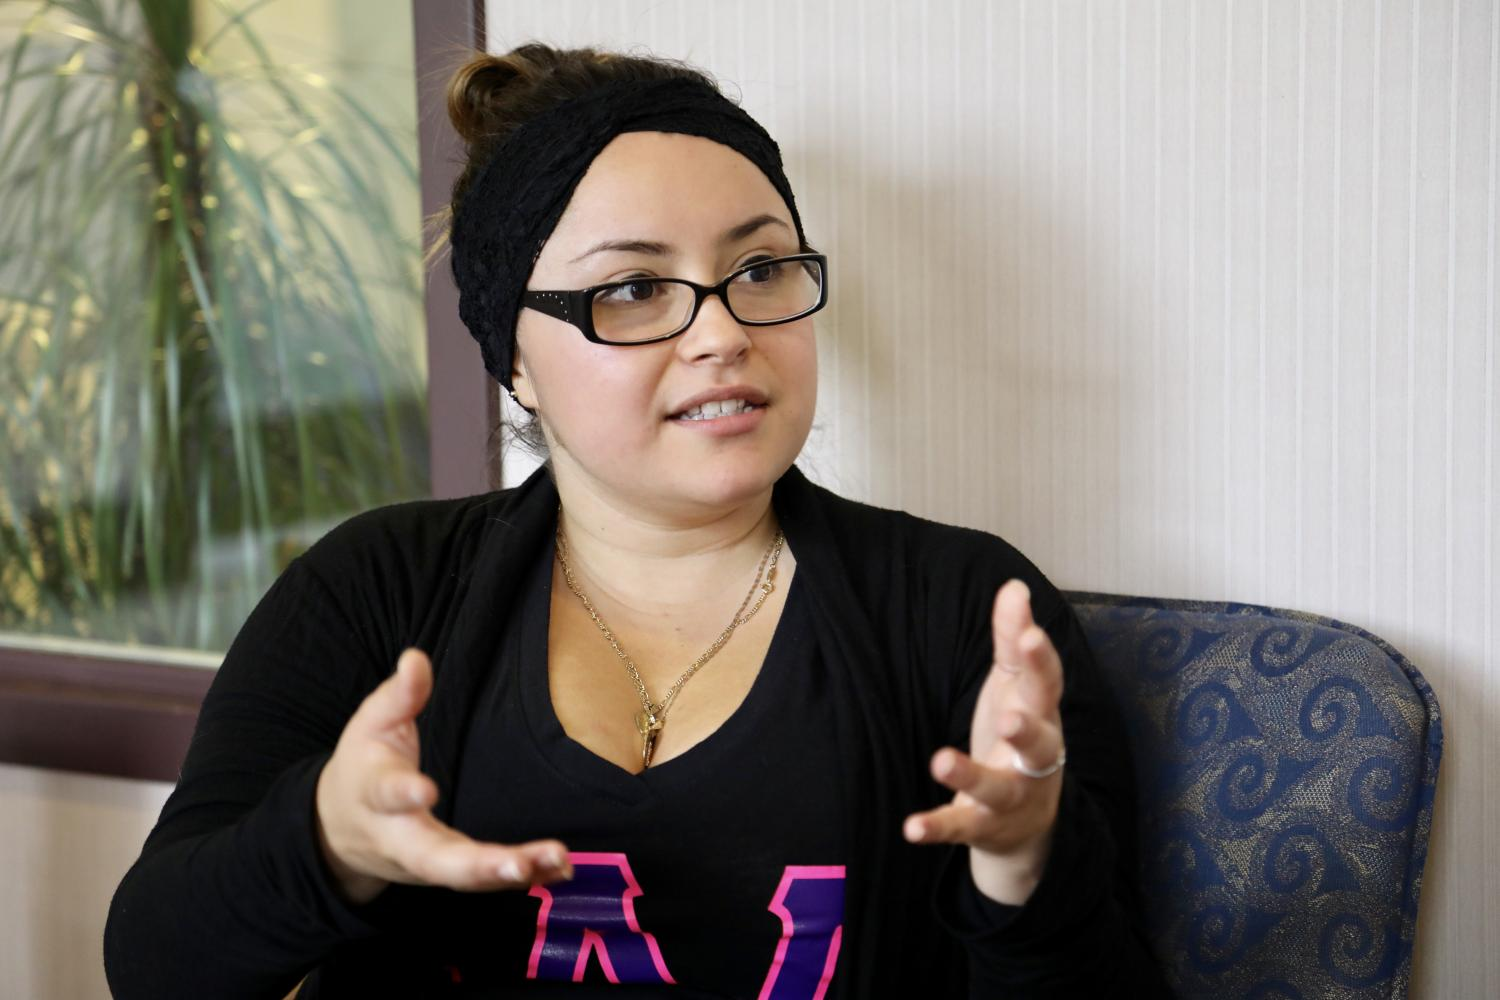 Fabiola Magaña, a senior in the College of Nursing, is a first-generation student.